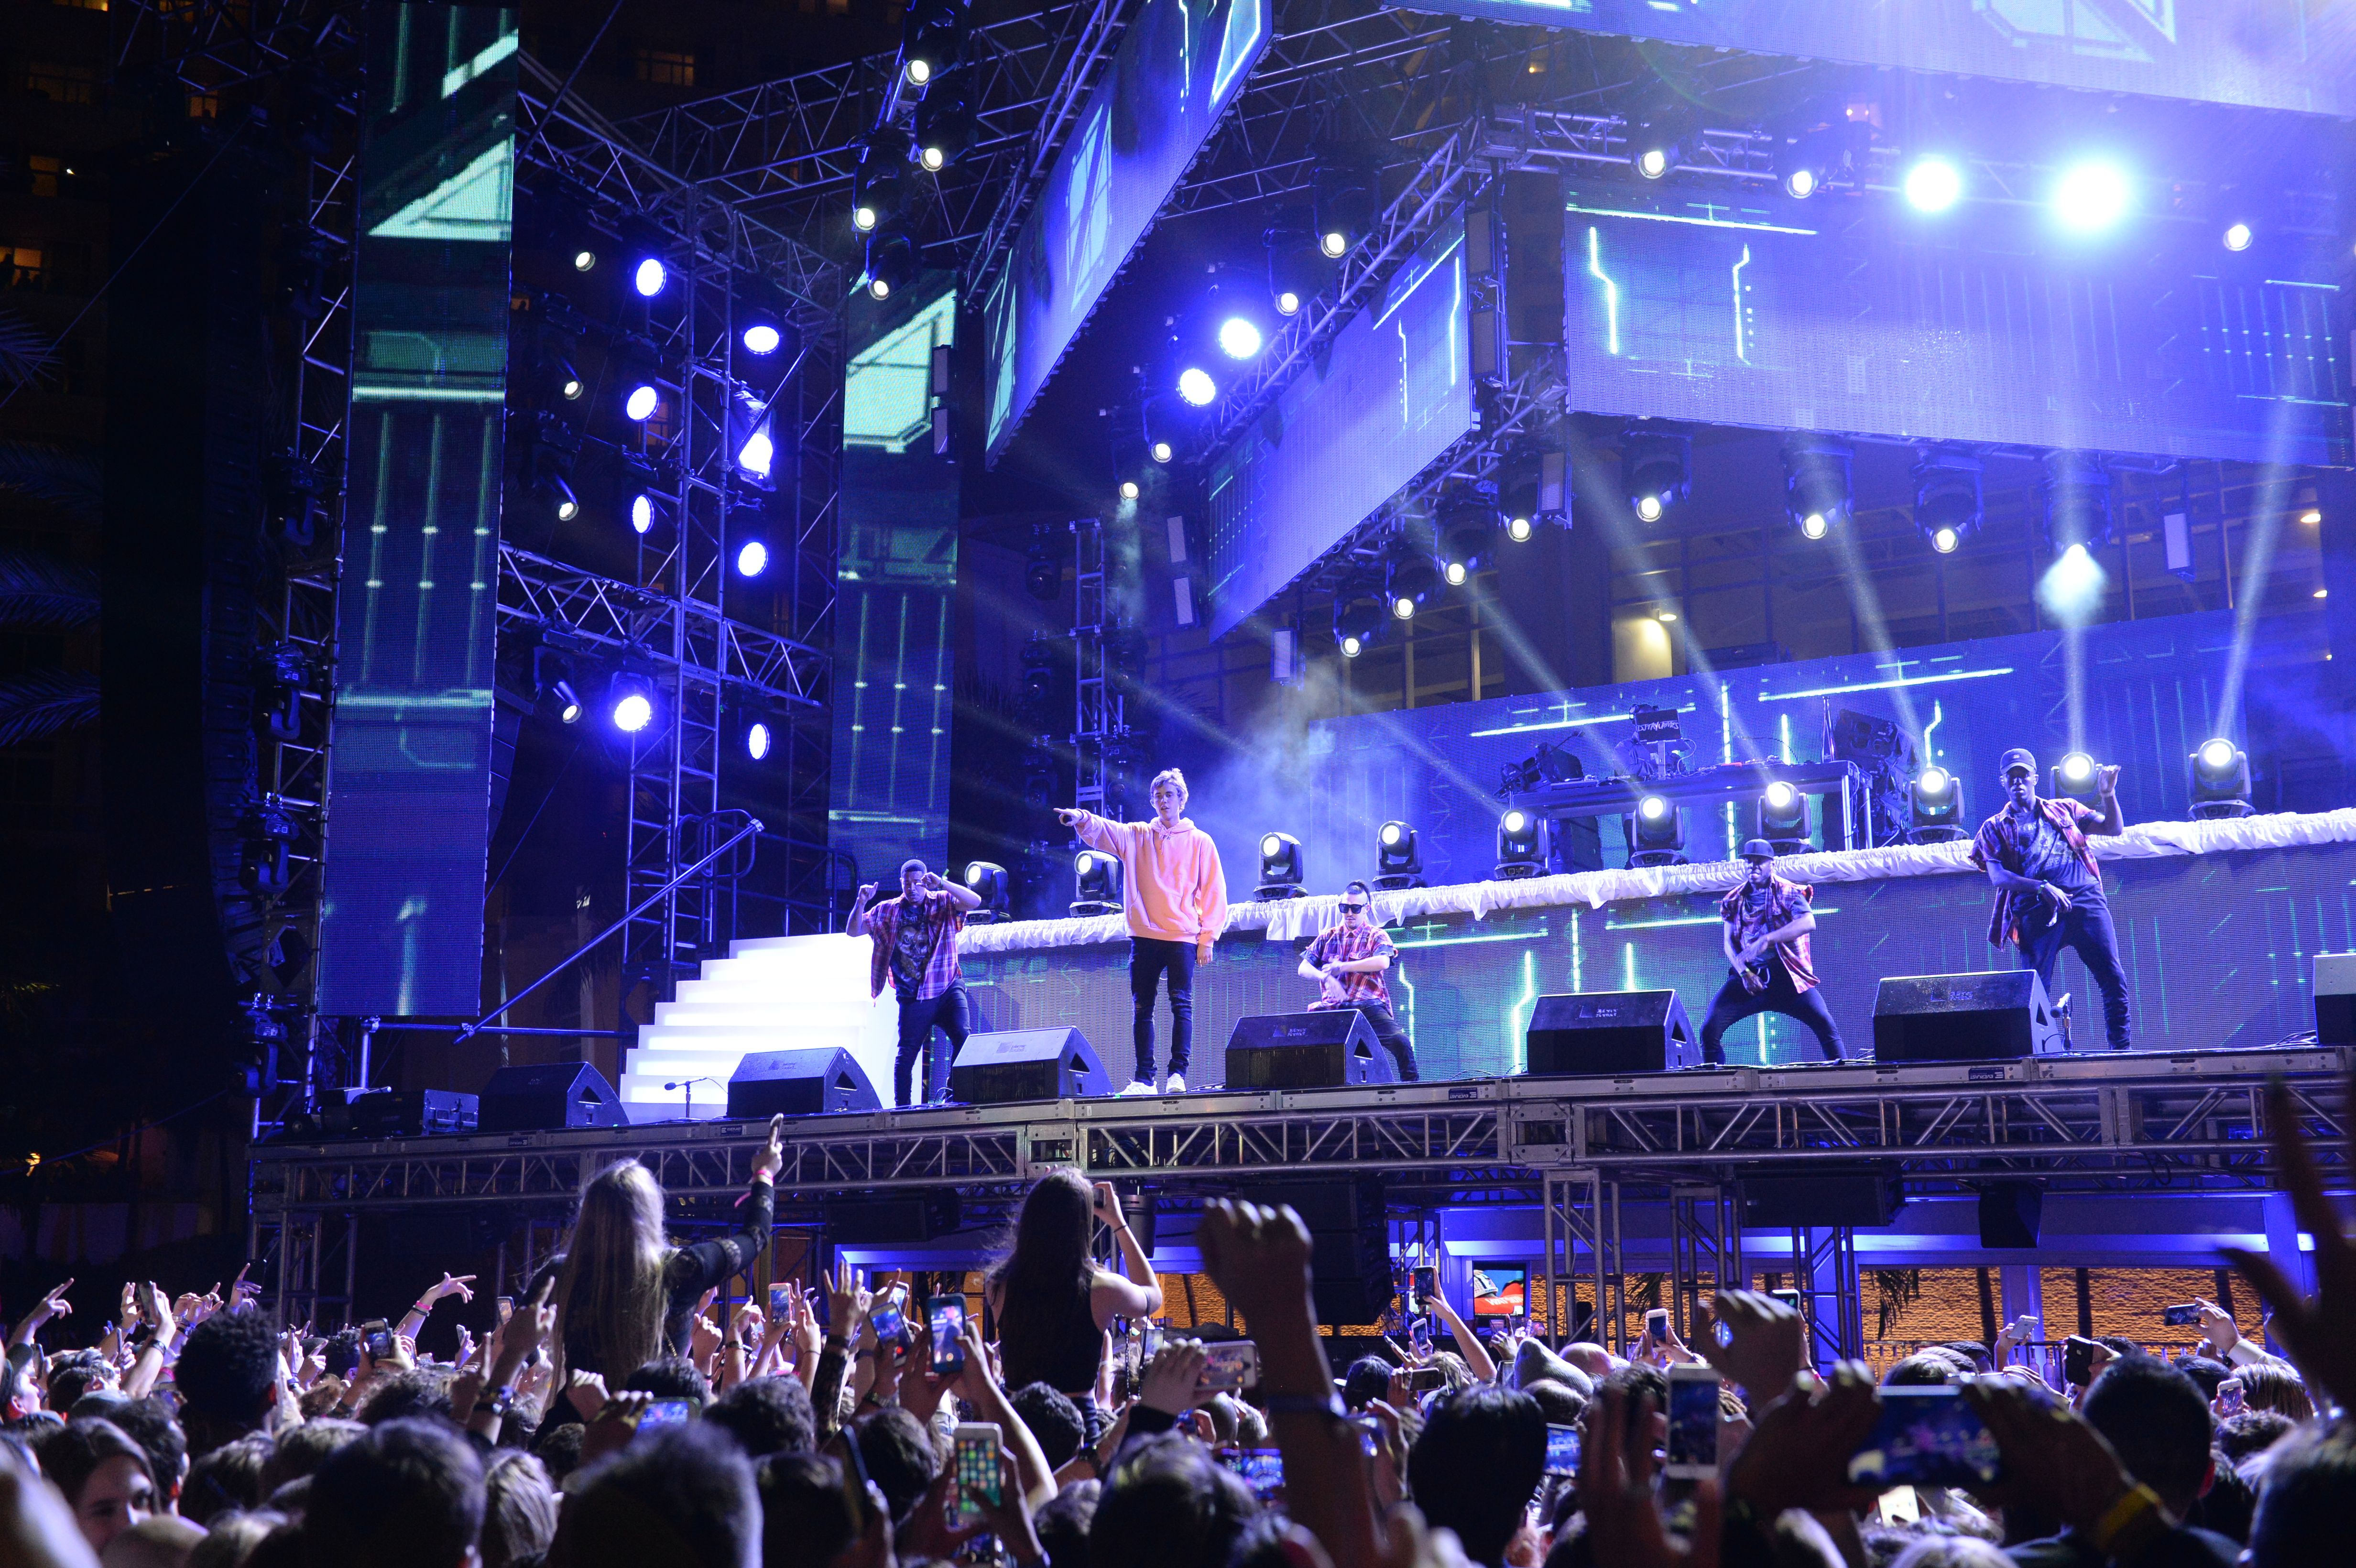 Justin Bieber performing on New Year's Eve at